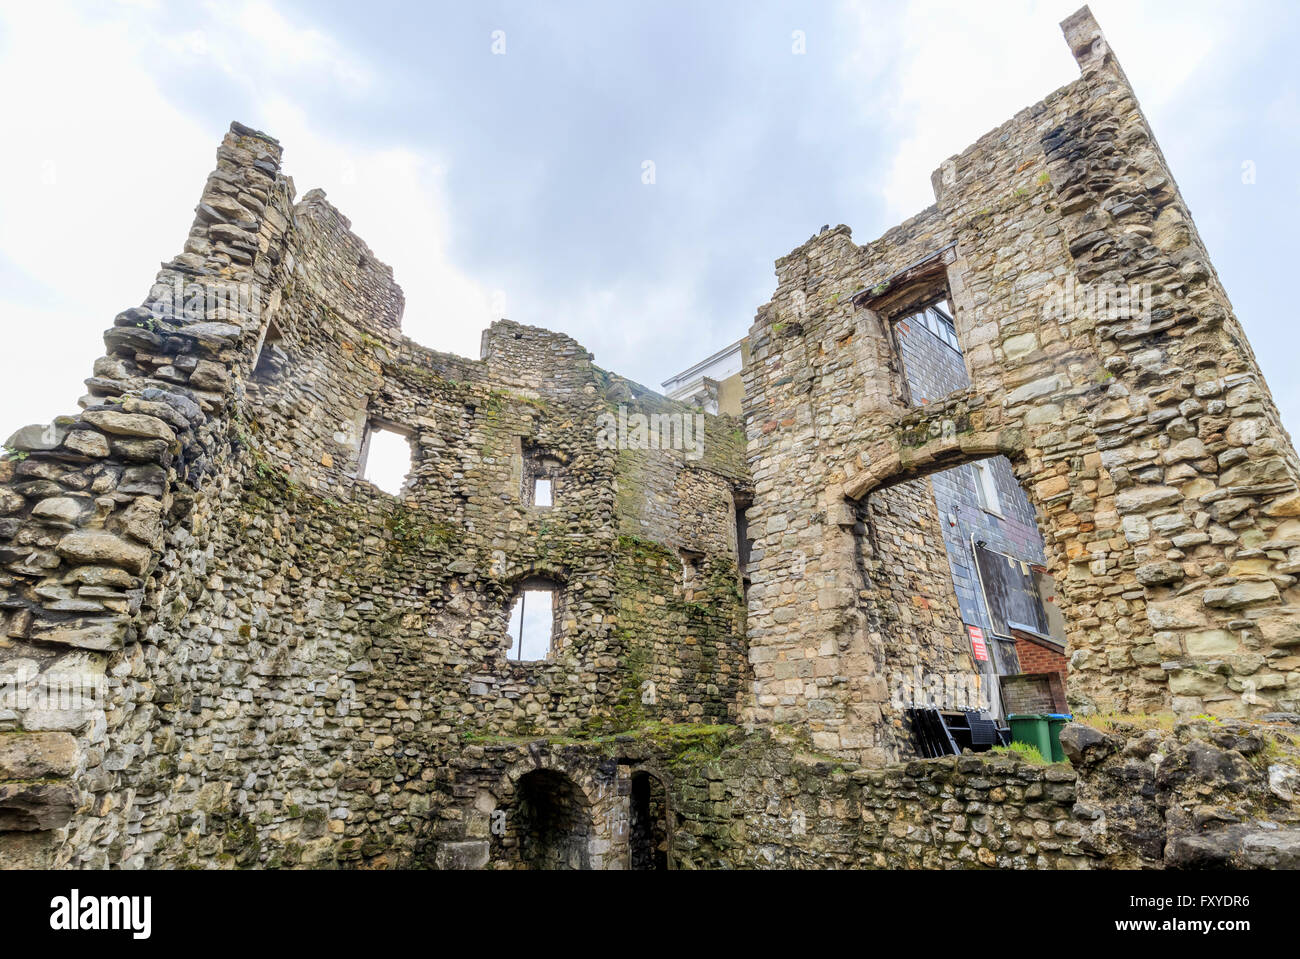 The old castle wall at Southampton, United Kingdom - Stock Image